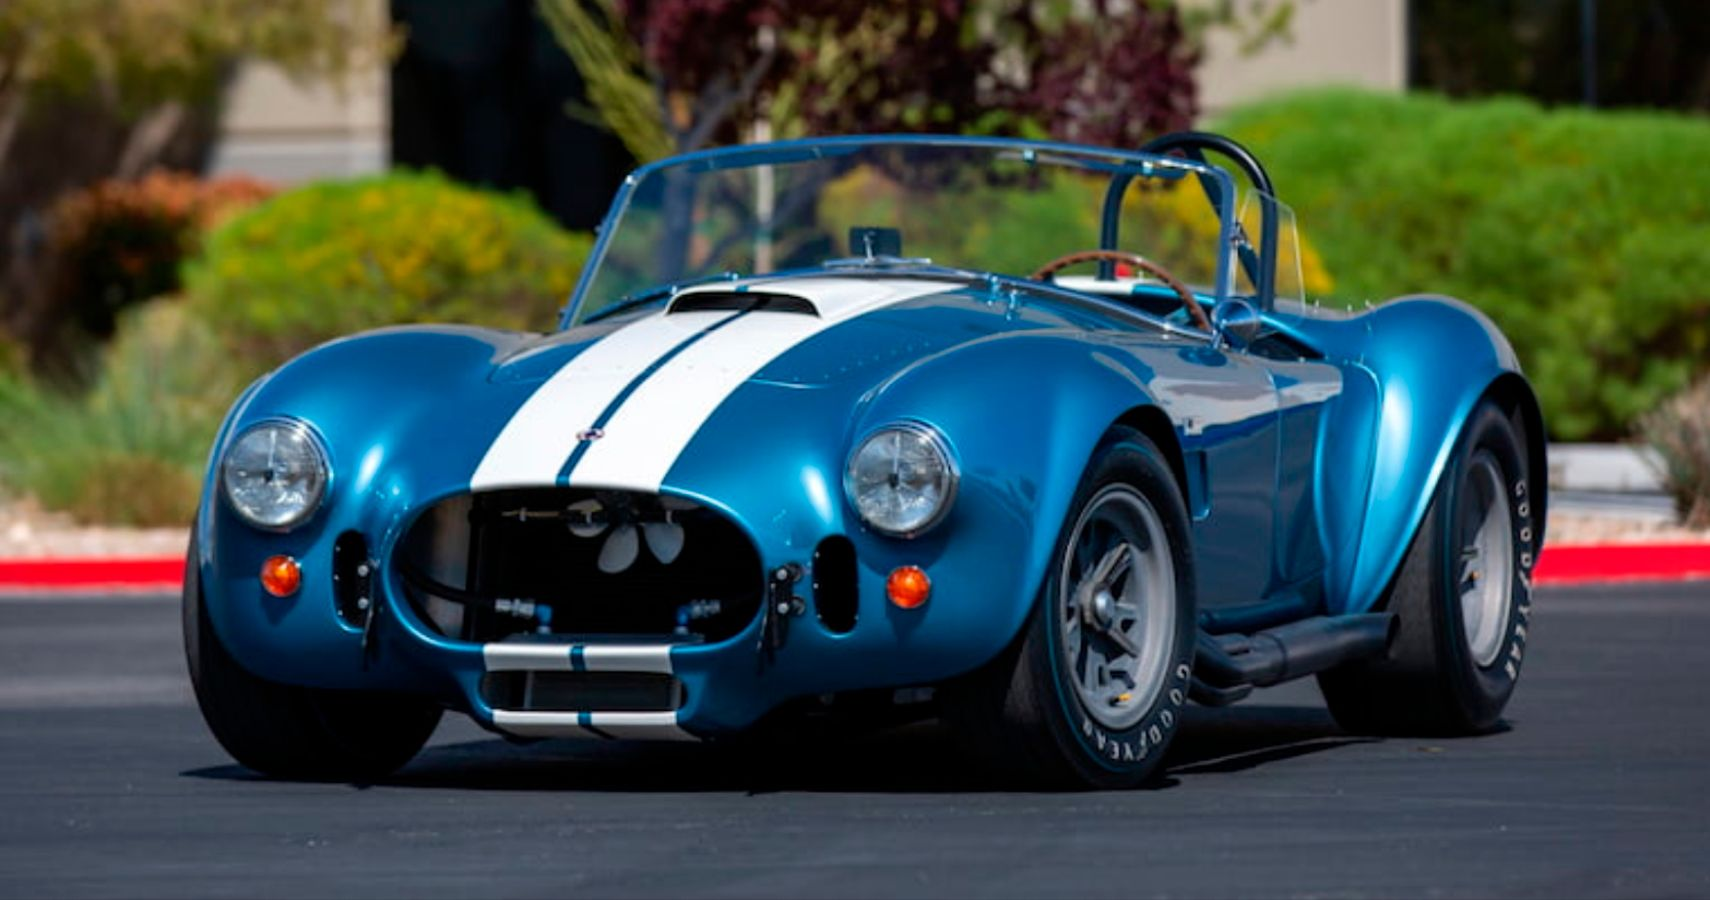 1-Of-27 Original Factory 427 S/C Cobra Goes To Auction | HotCars